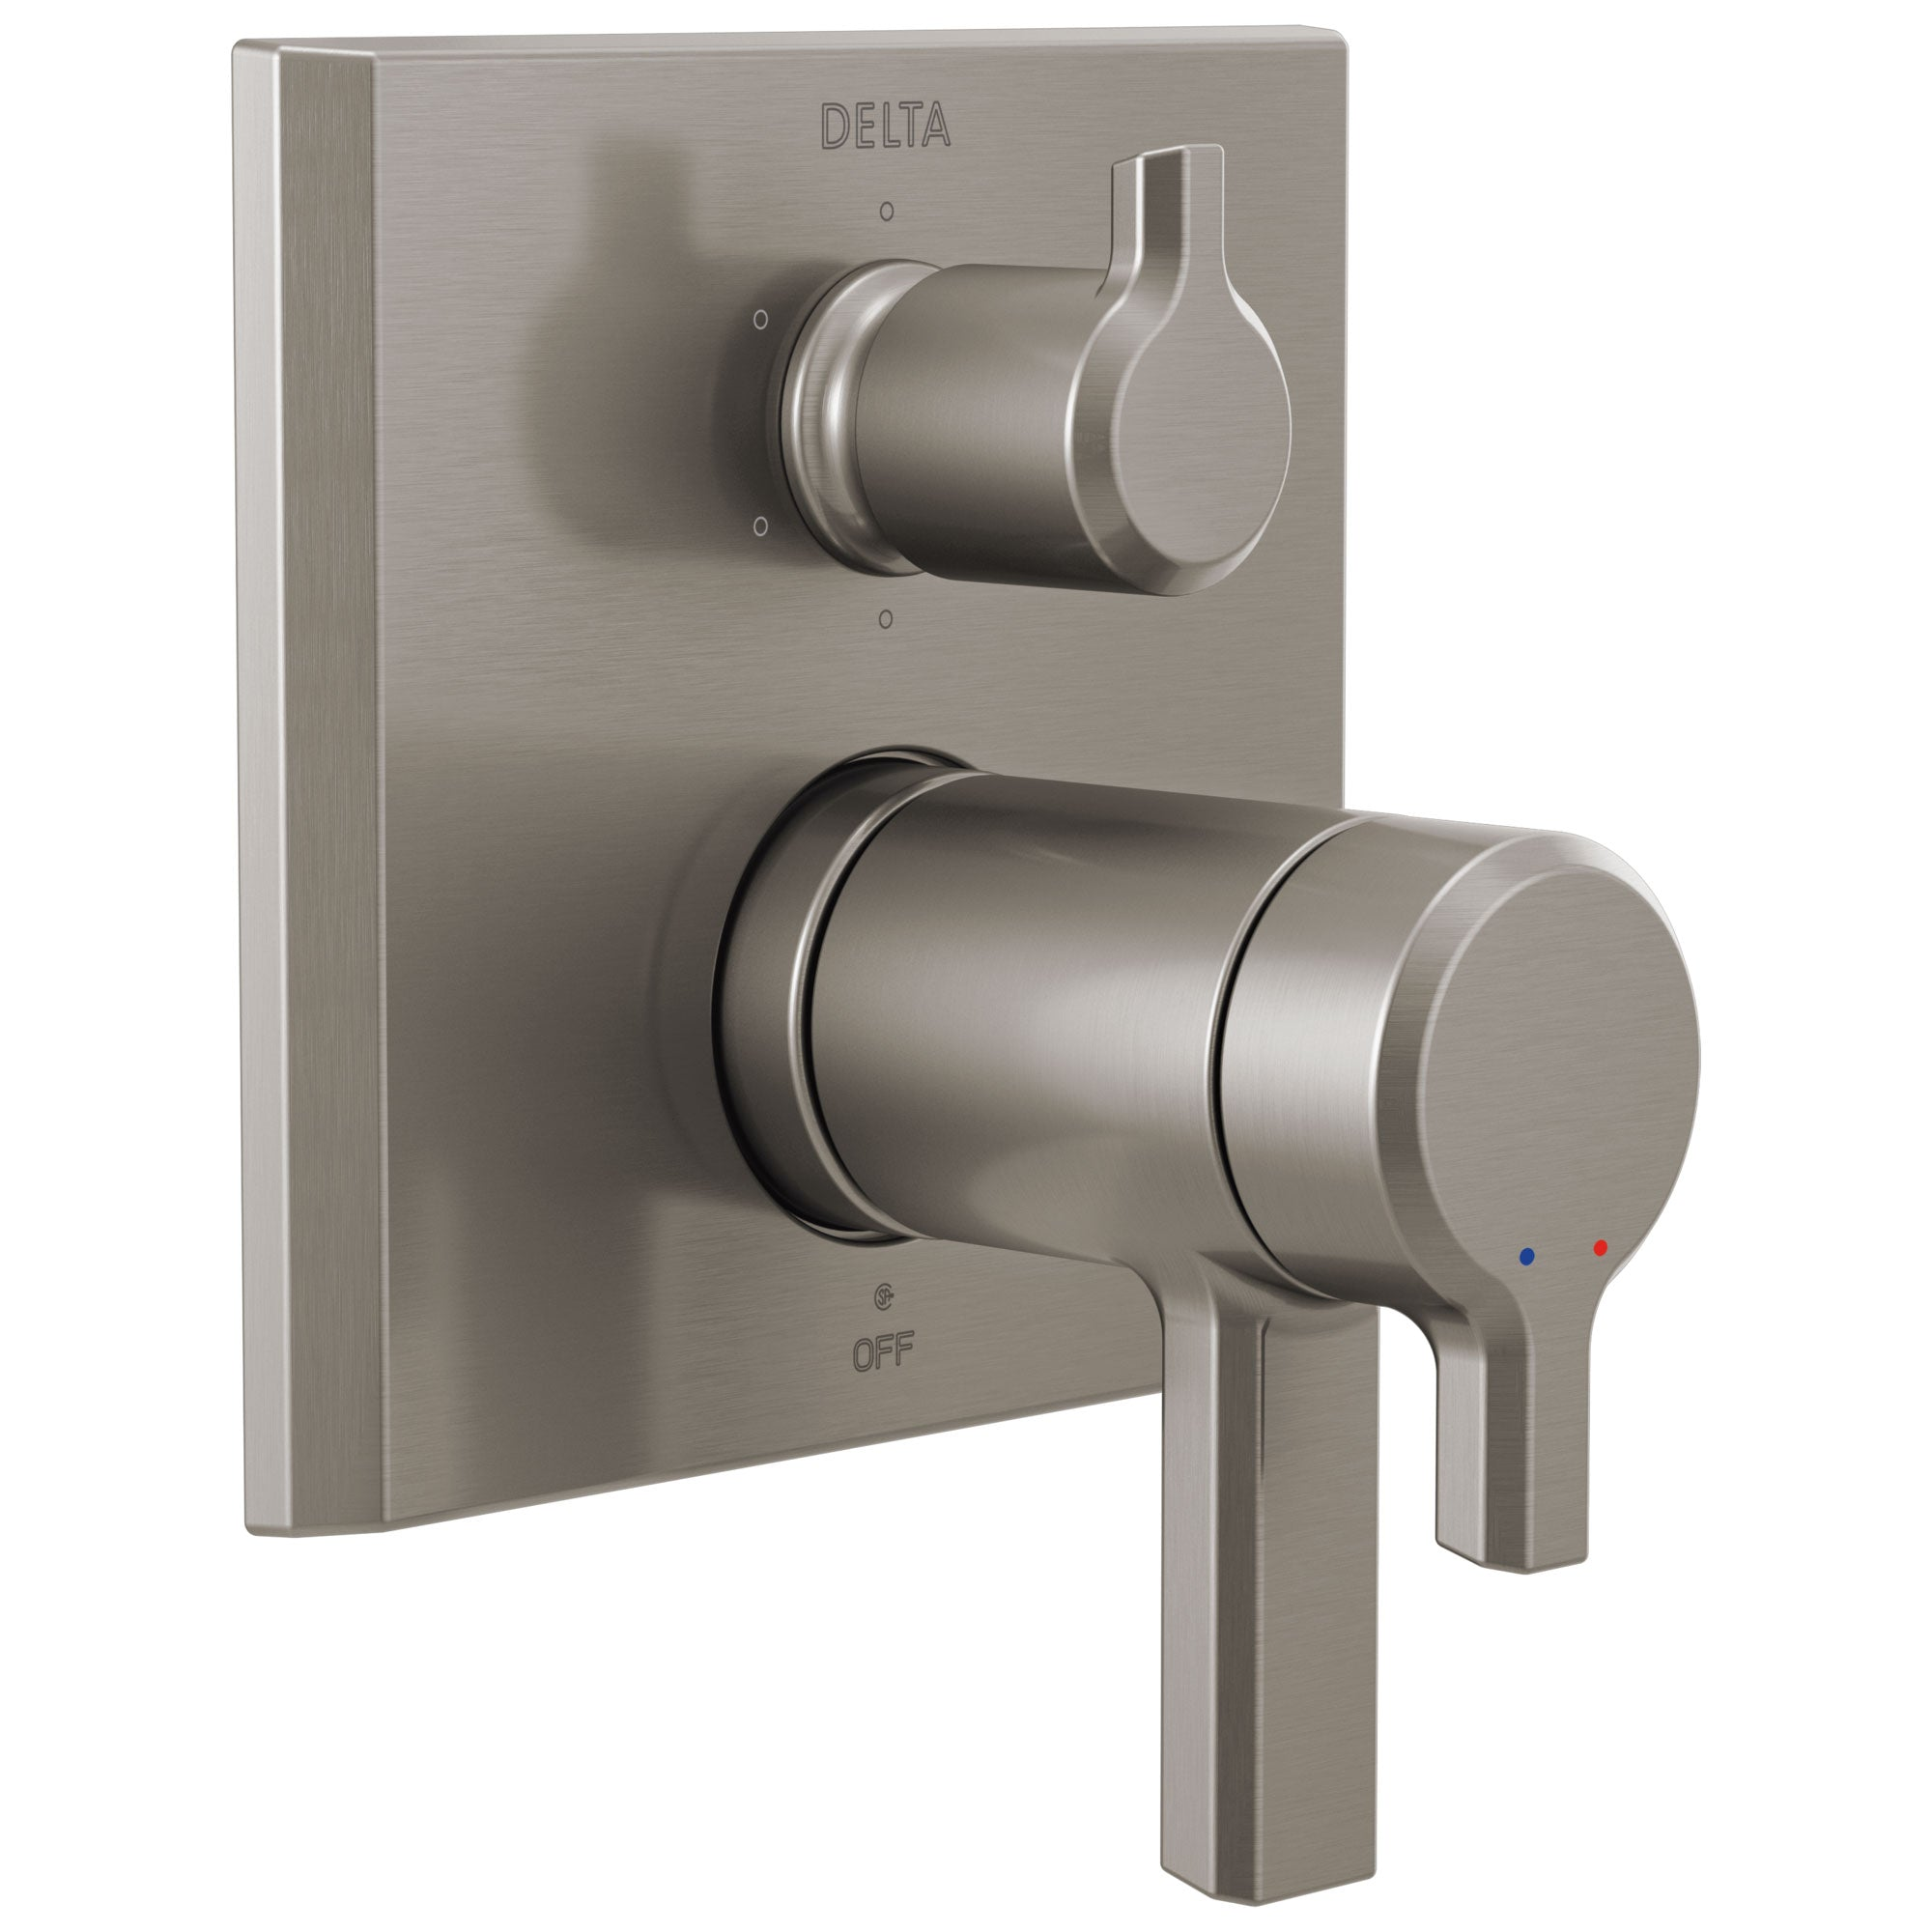 Delta Pivotal Stainless Steel Finish TempAssure 17T Series Shower Control Trim with 6-Setting Integrated Diverter (Requires Valve) DT27T999SS